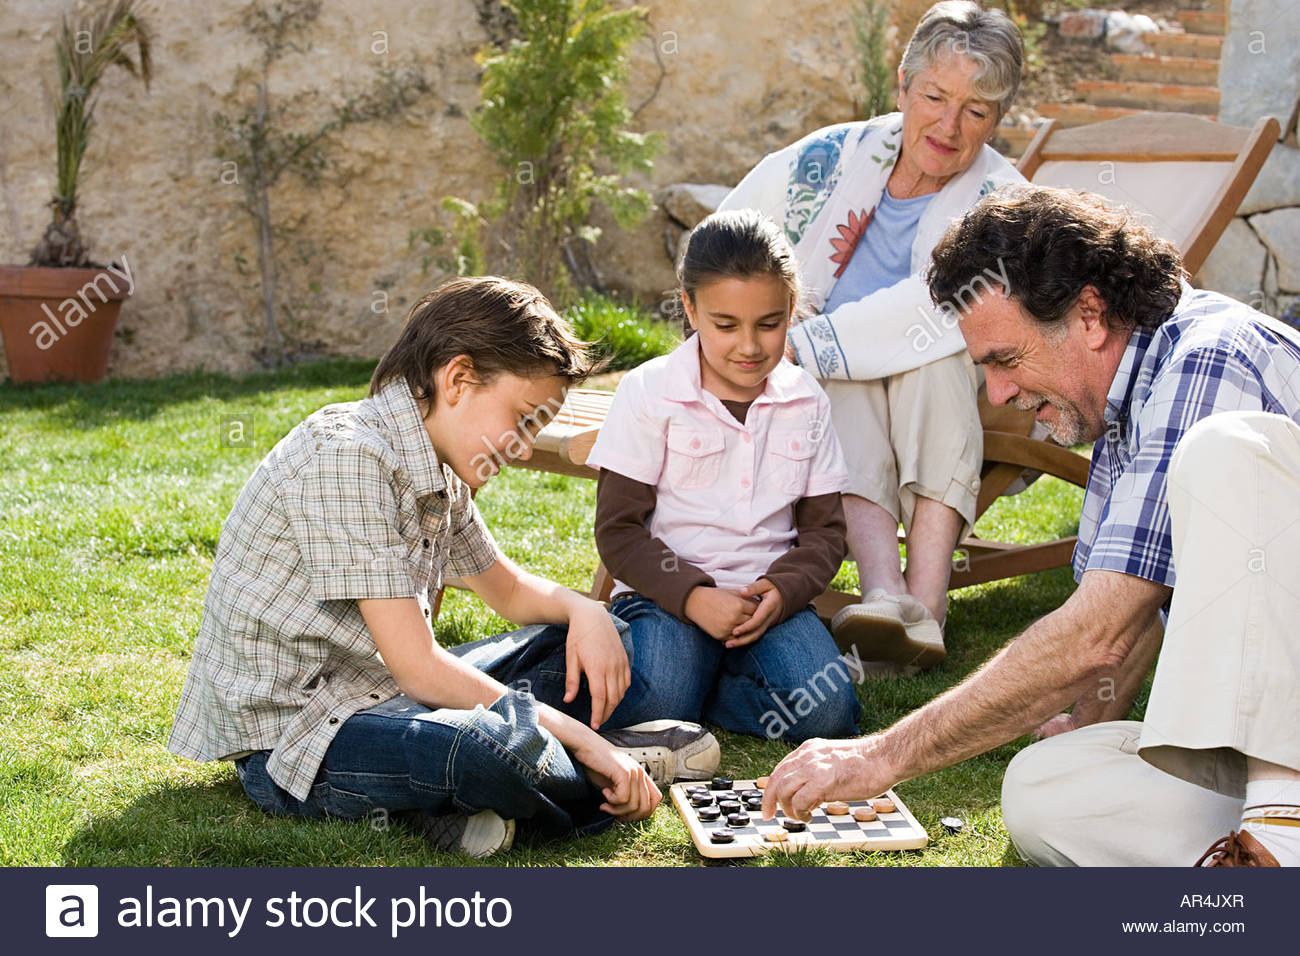 Grandparents and grandchildren playing draughts - Stock Image